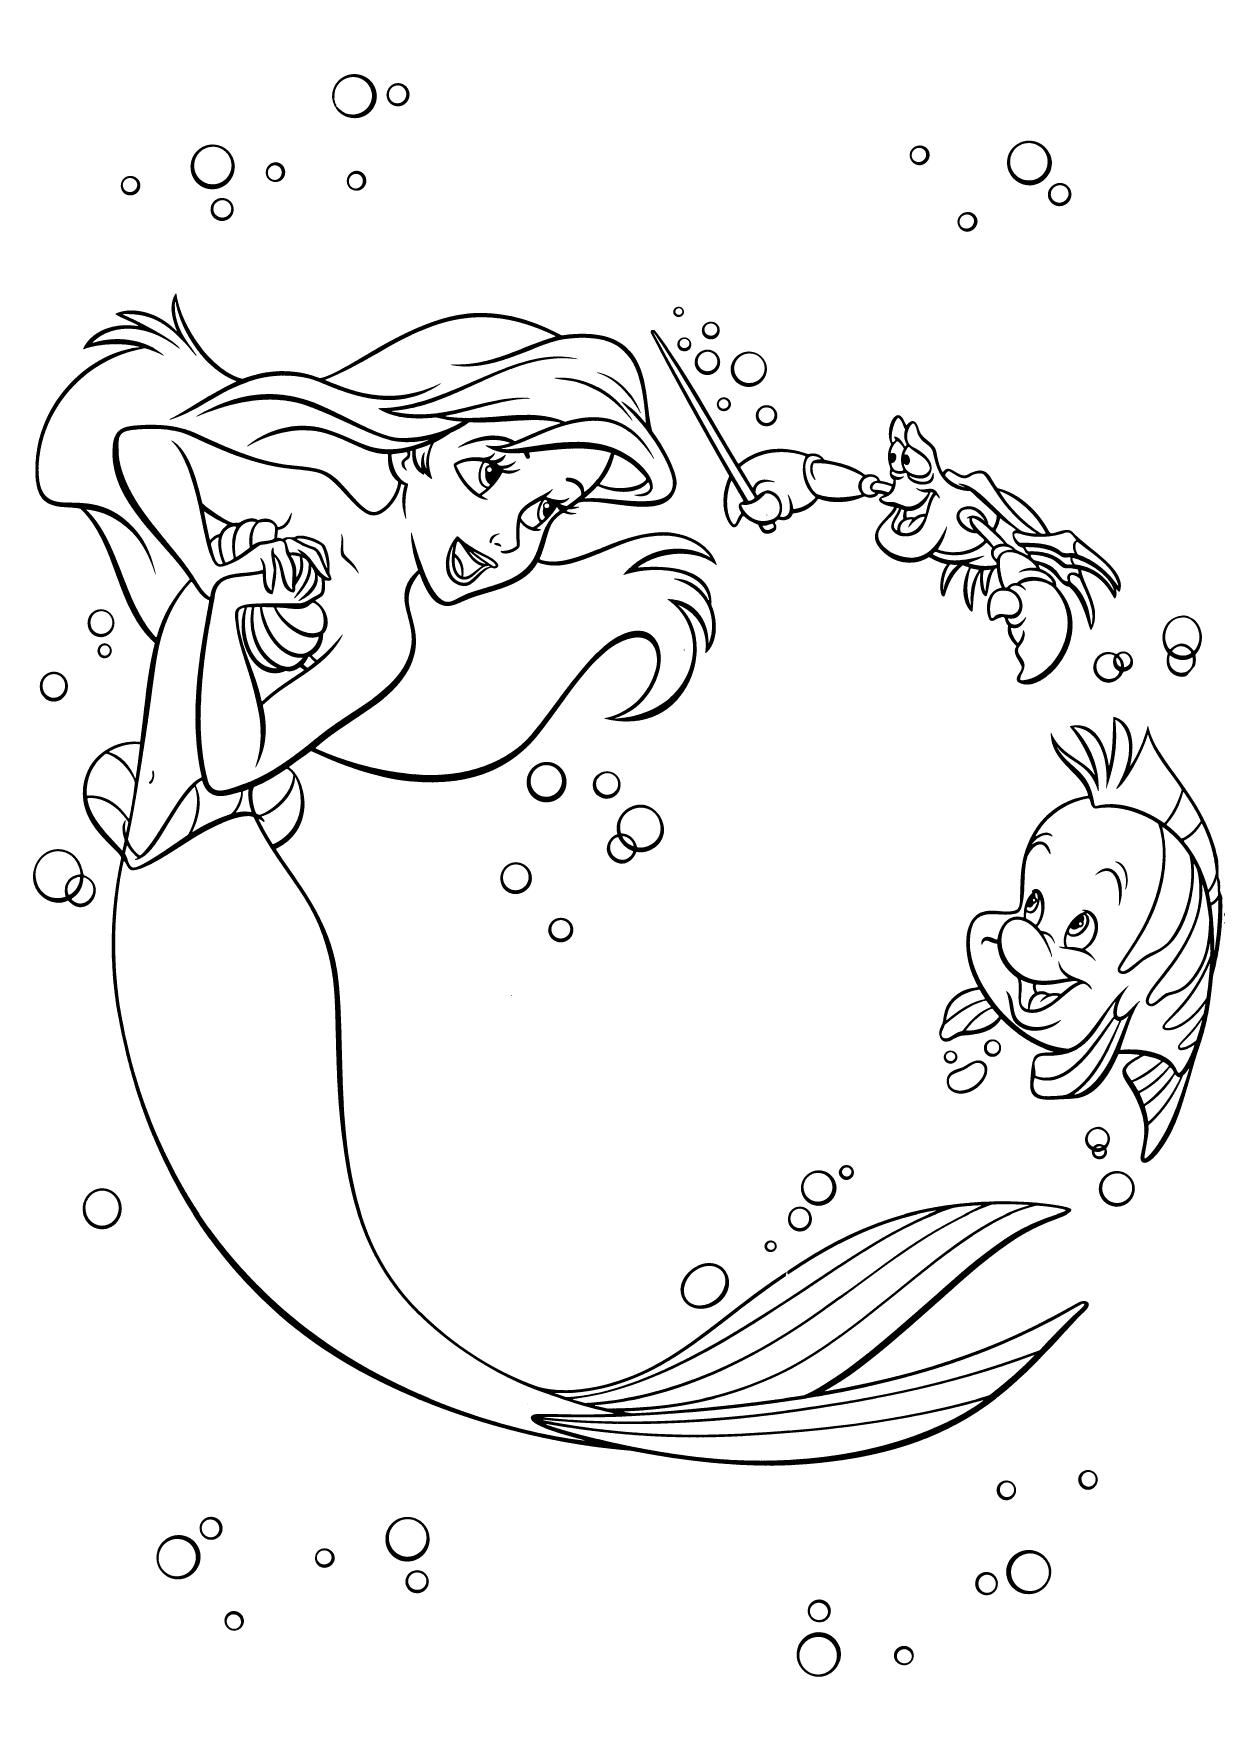 Disney Coloring Book Pdf Free Download Coloring Pages Allow Kids To Accompany The Mermaid Coloring Pages Ariel Coloring Pages Disney Princess Coloring Pages